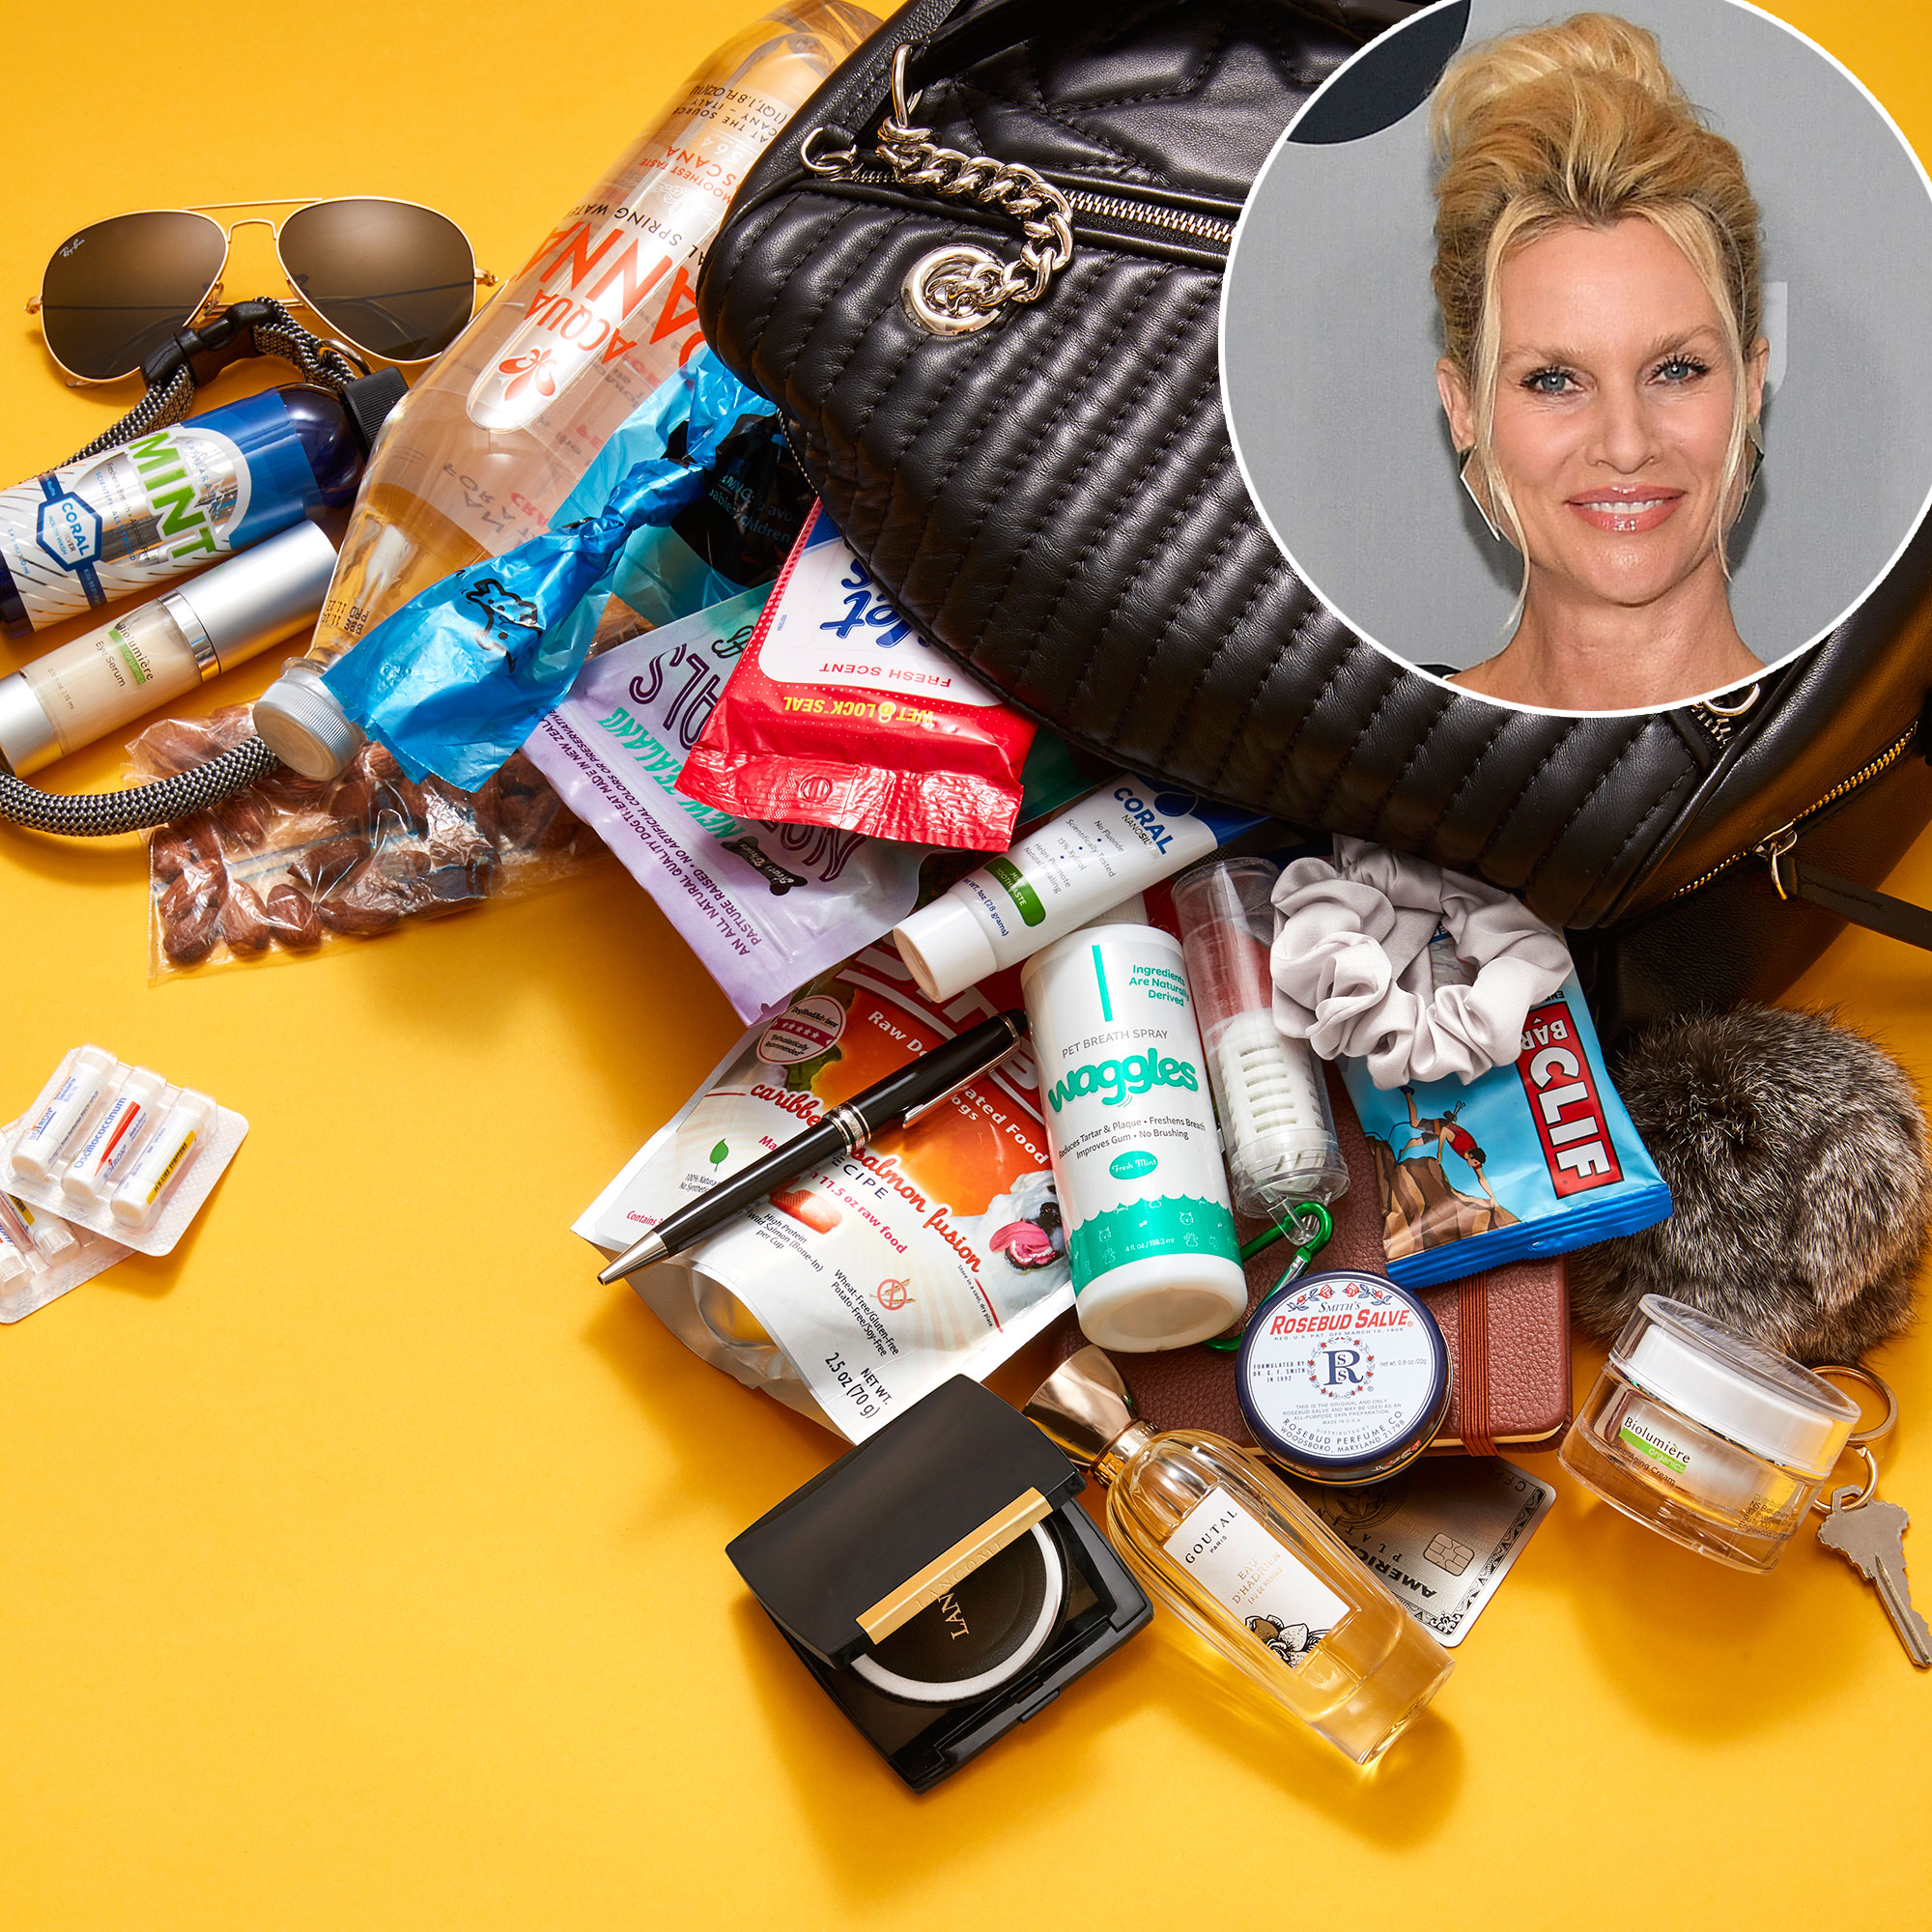 Nicollette Sheridan: What's in My Bag?